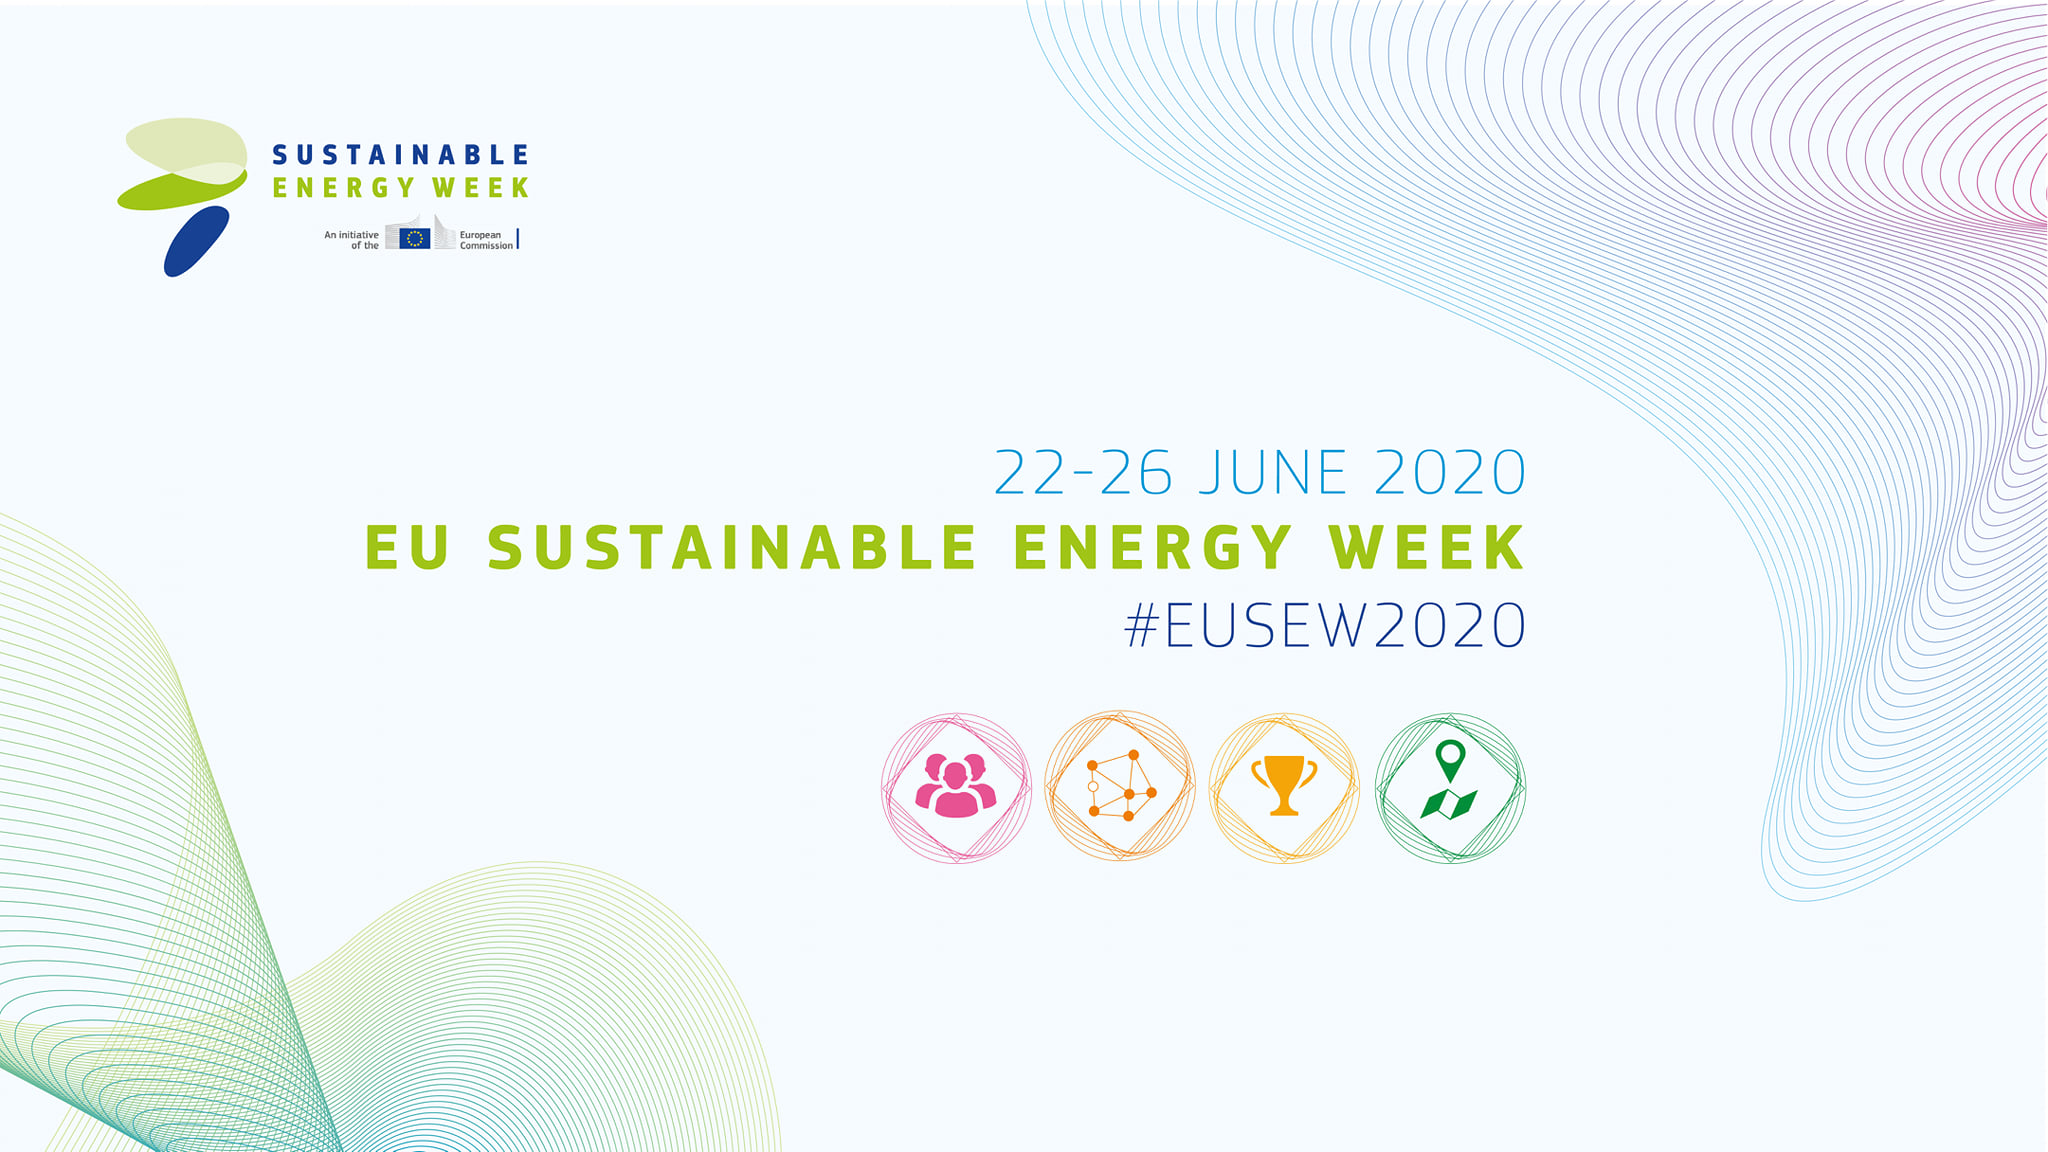 The EU Sustainable Energy Week Is Returning For Its 15th Edition!